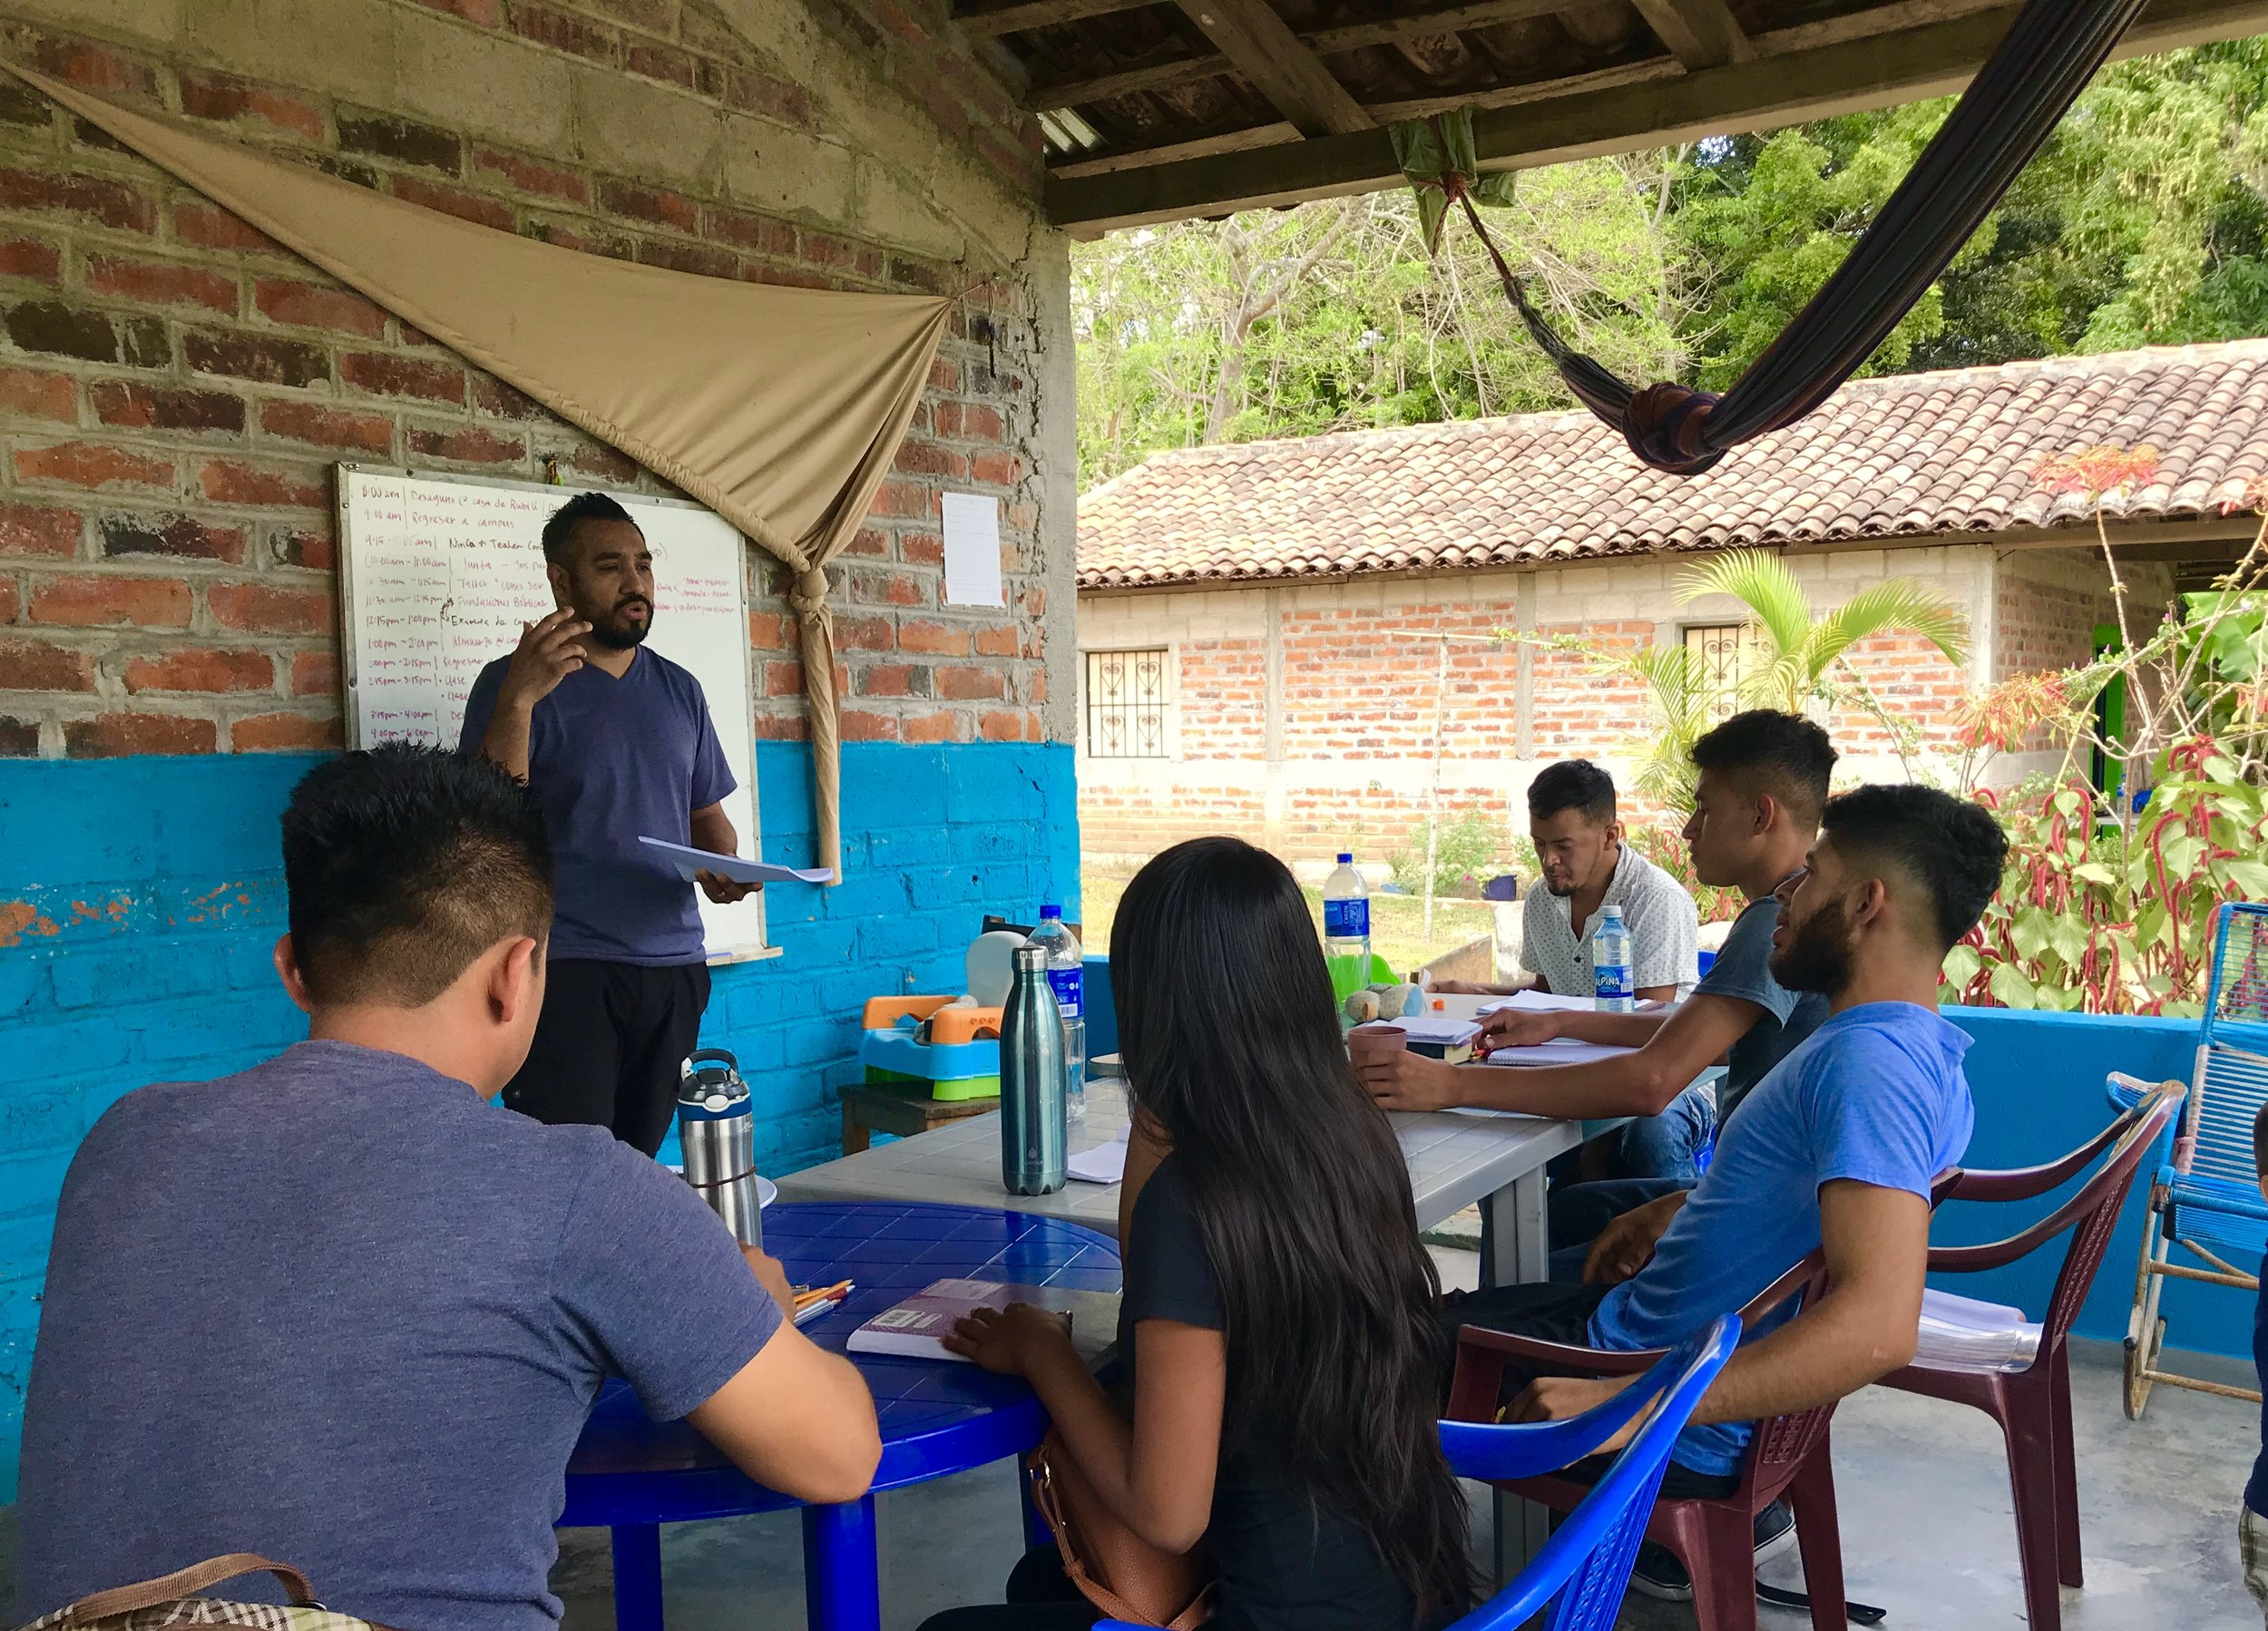 Our delegation team facilitated several student development seminars and assessments for our interns throughout the week including note taking, reading for critical comprehension and the inductive study method to name a few. Here, Rafael Reyes (pictured) leads an assessment on reading comprehension.